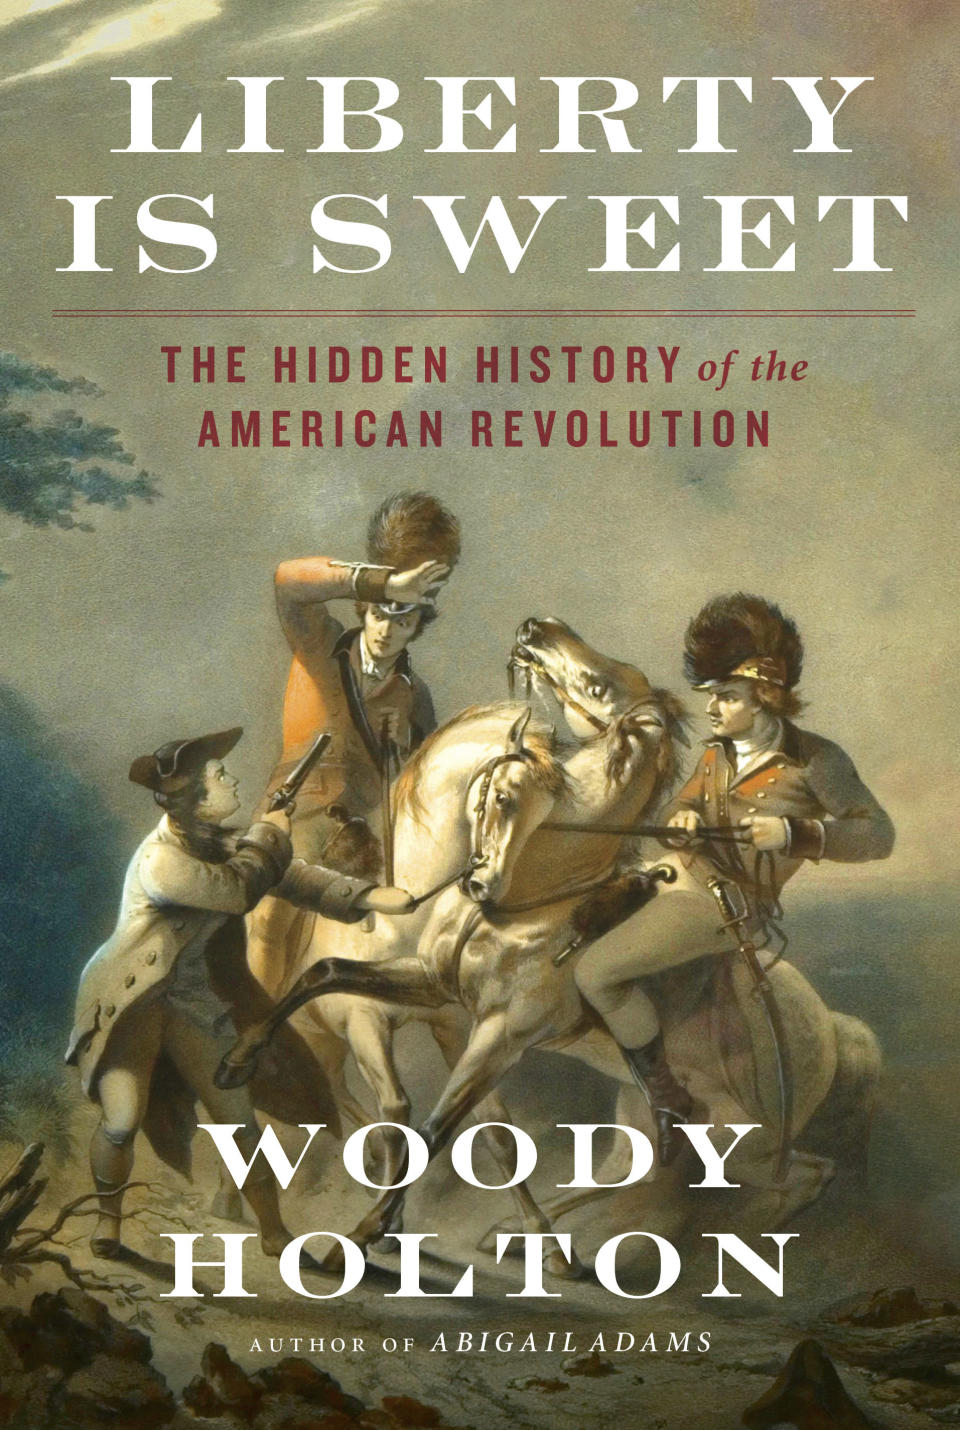 """This cover image released by Simon & Schuster shows """"Liberty Is Sweet: The Hidden History of the American Revolution"""" by Woody Holton, releasing Oct. 19. (Simon & Schuster via AP)"""